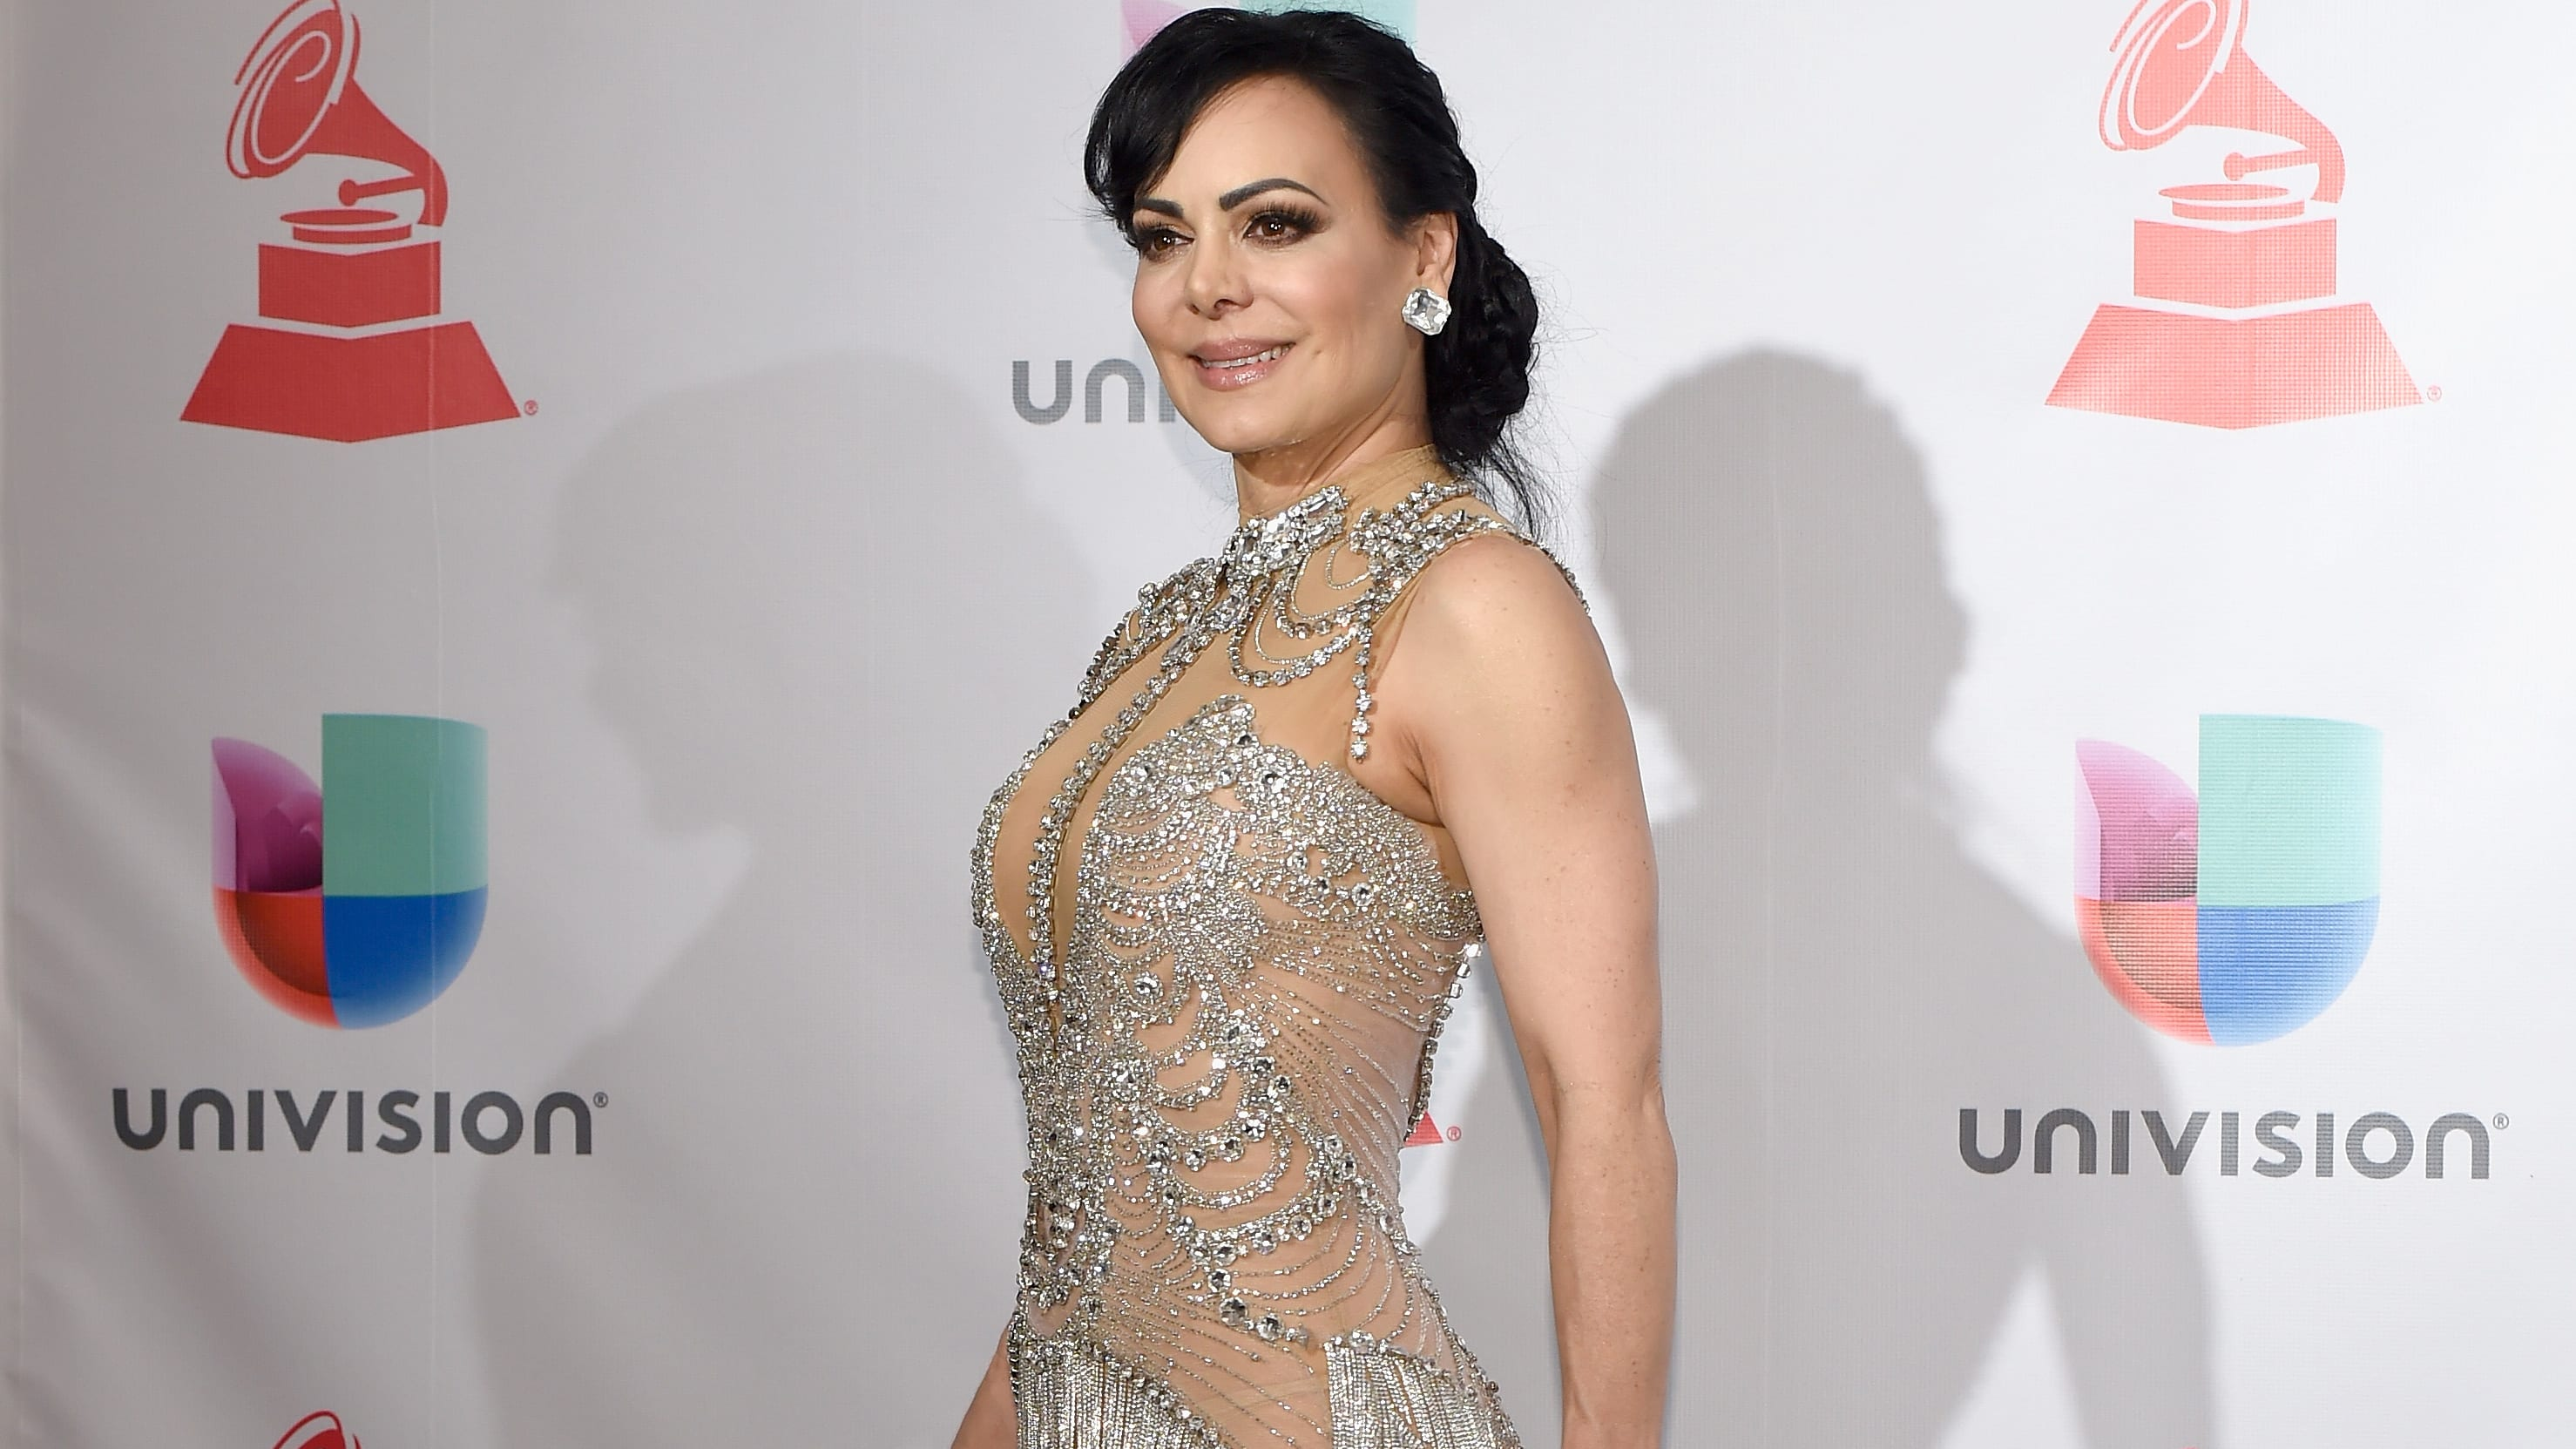 LAS VEGAS, NV - NOVEMBER 16:  Maribel Guardia poses in the press room during The 18th Annual Latin Grammy Awards at MGM Grand Garden Arena on November 16, 2017 in Las Vegas, Nevada.  (Photo by David Becker/Getty Images )